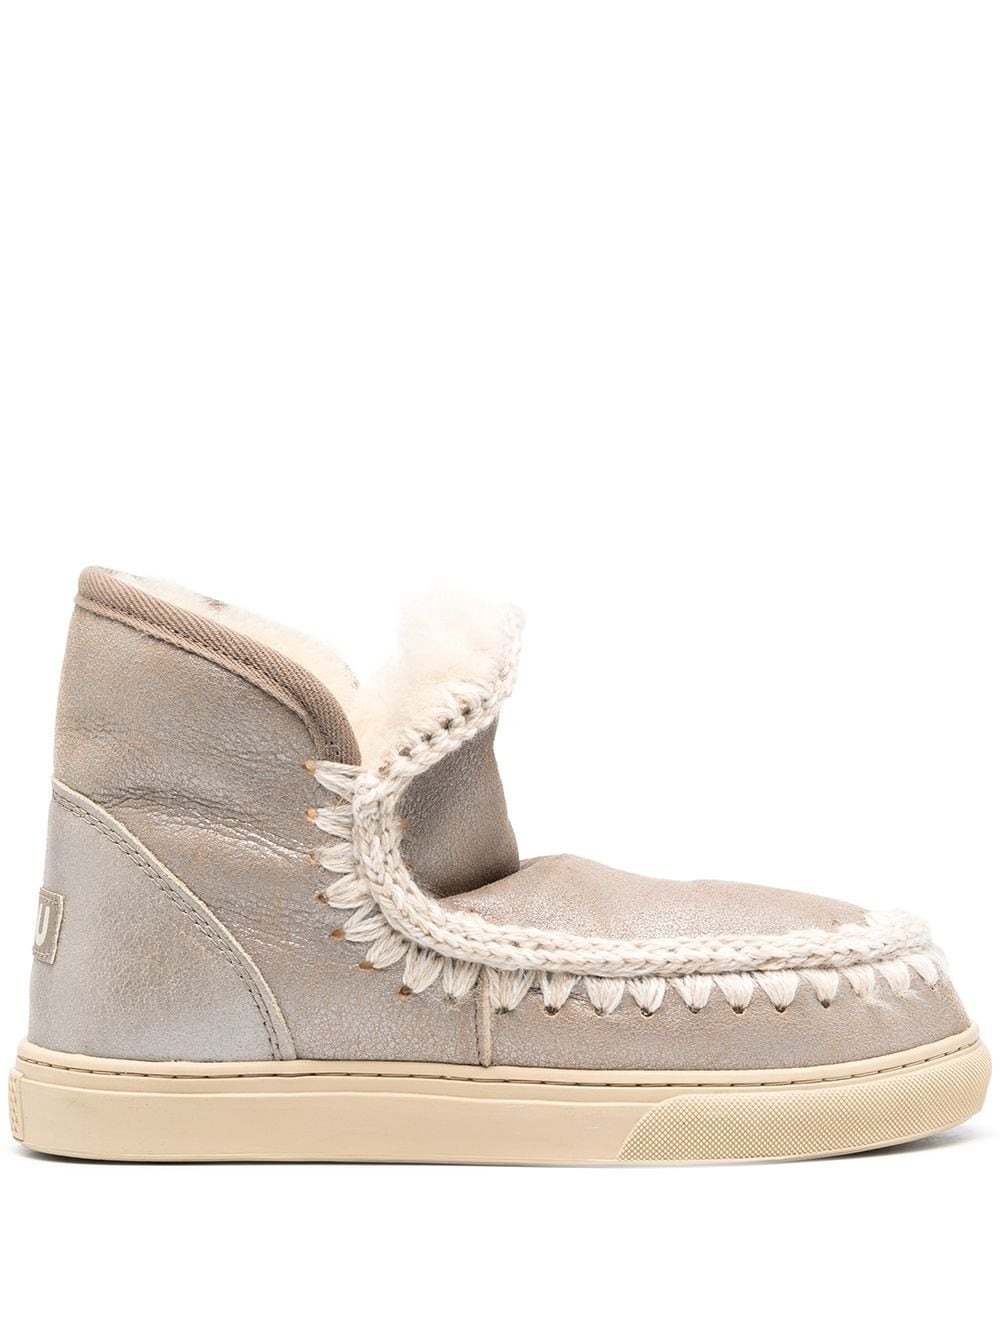 Eskimo Sneaker Ankle Boots